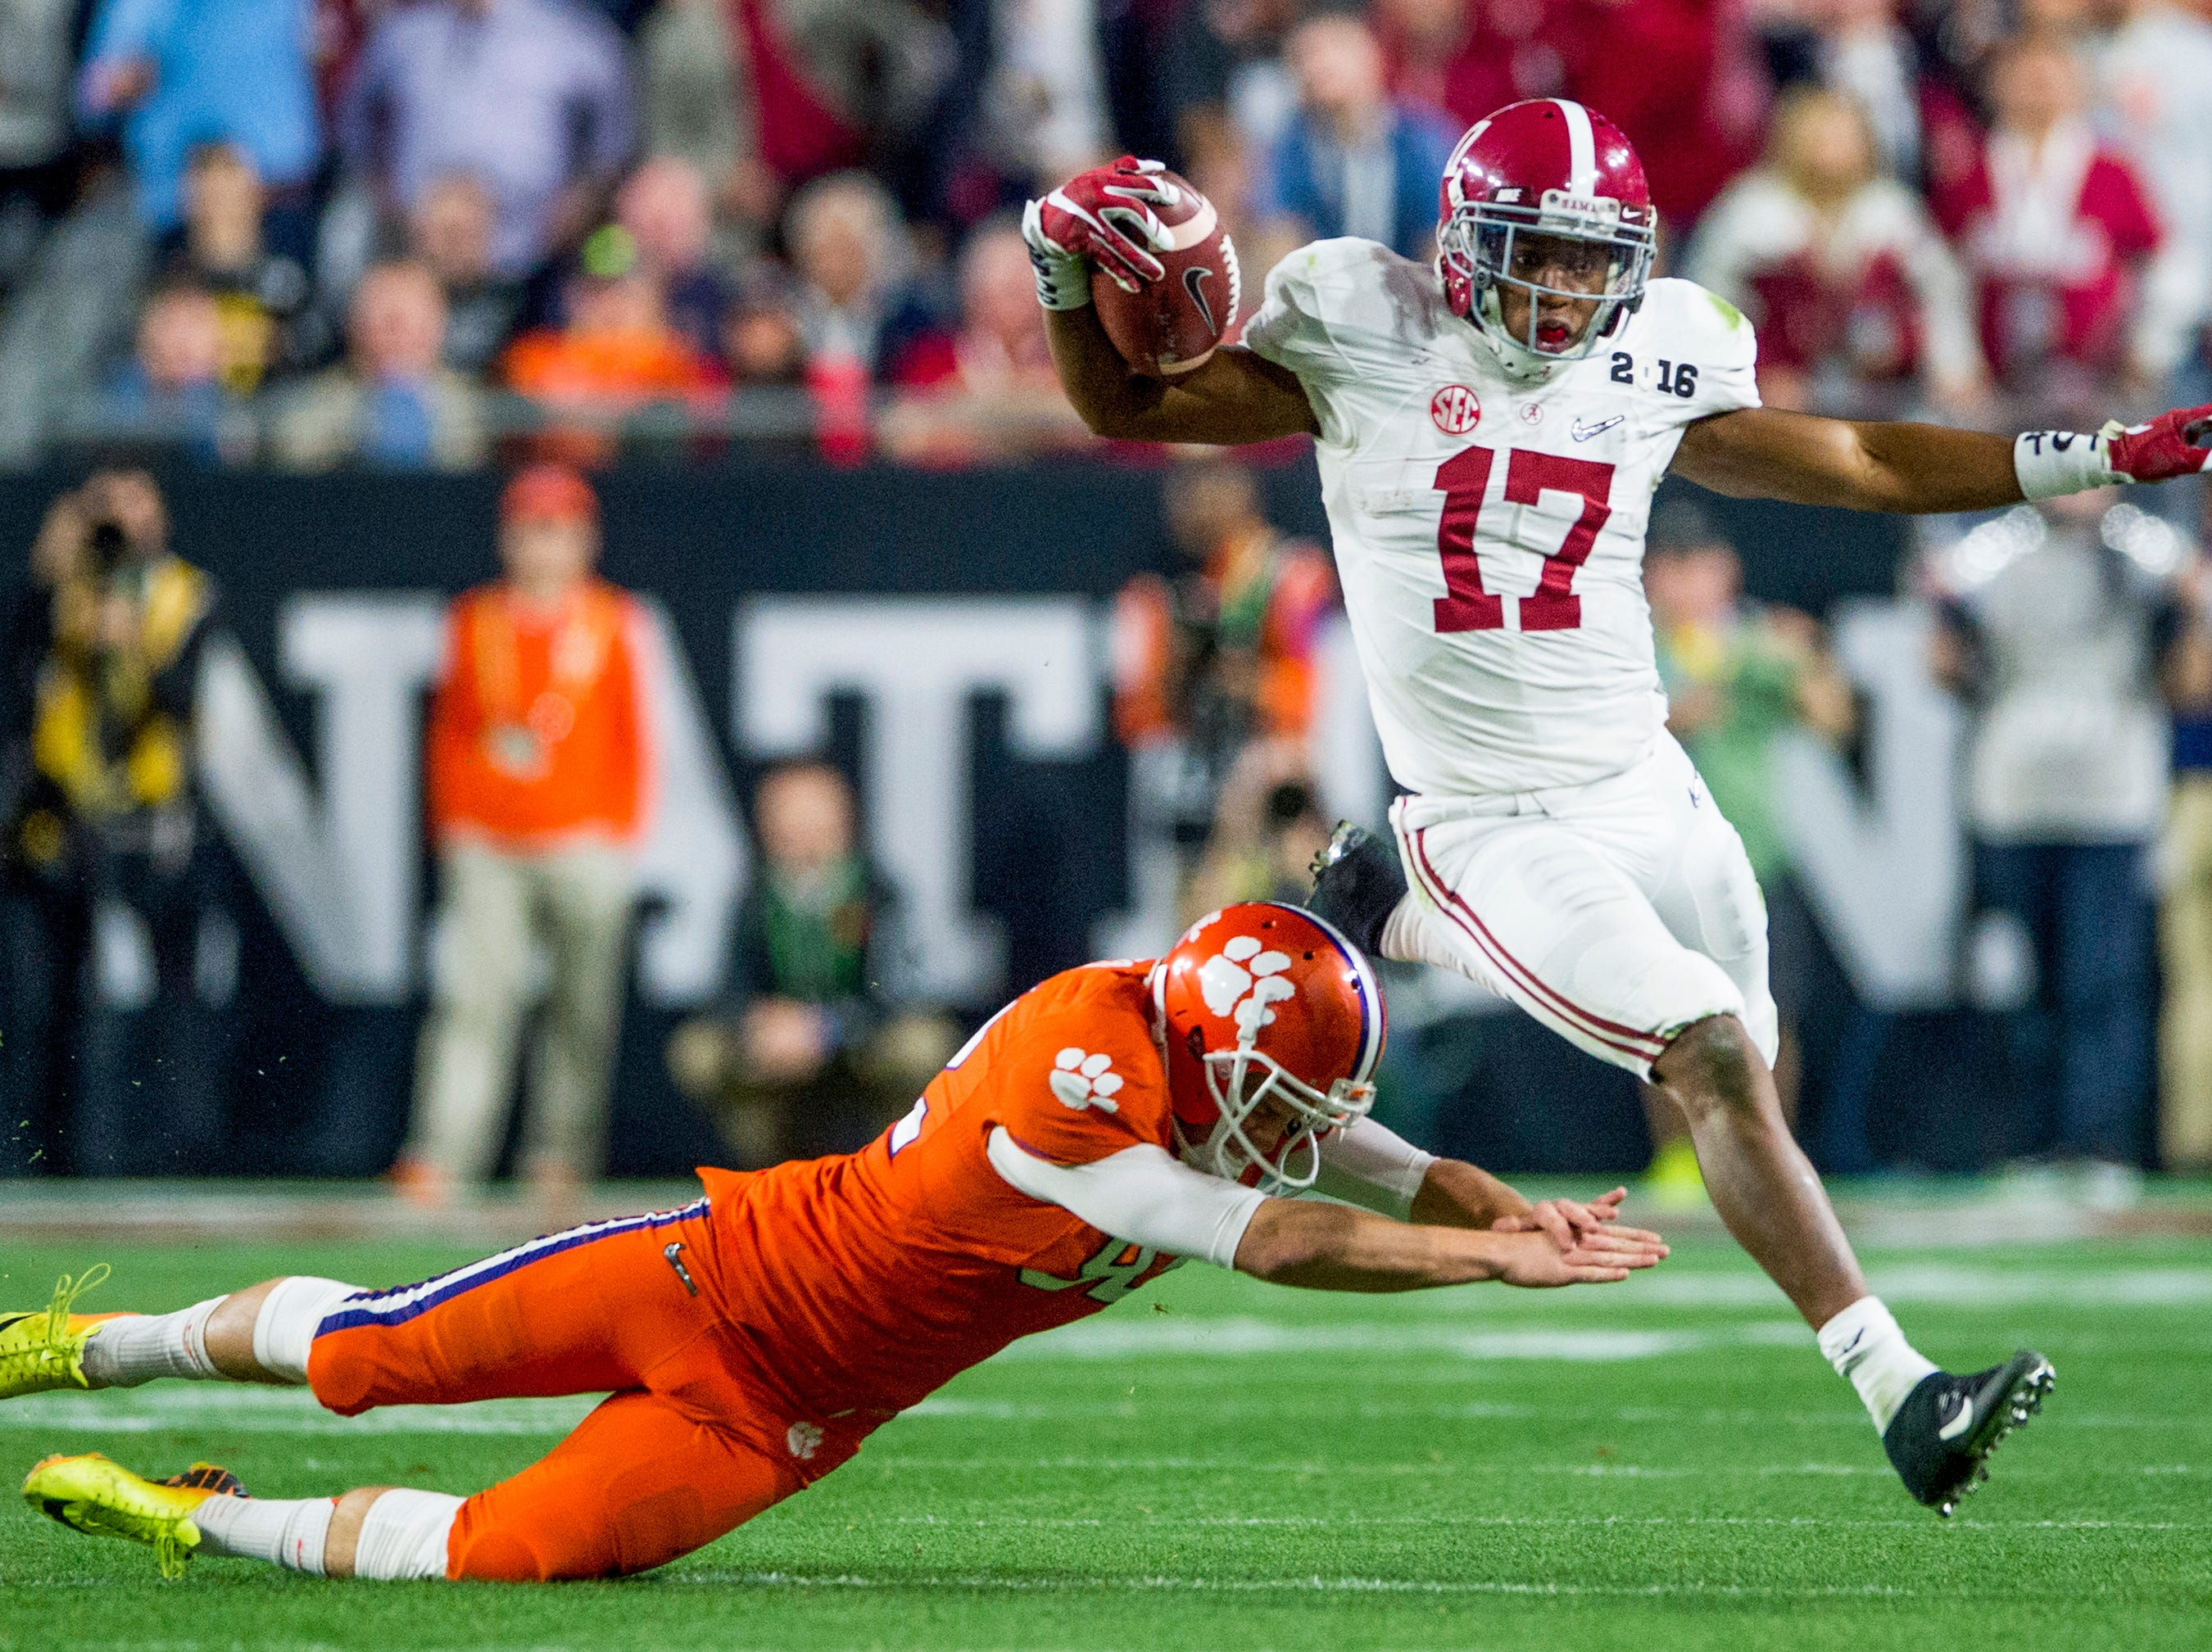 Alabama running back Kenyan Drake (17) carries against Clemson in the College Football Playoff Championship Game on Monday January 11, 2016 at University of Phoenix Stadium in Glendale, Az.